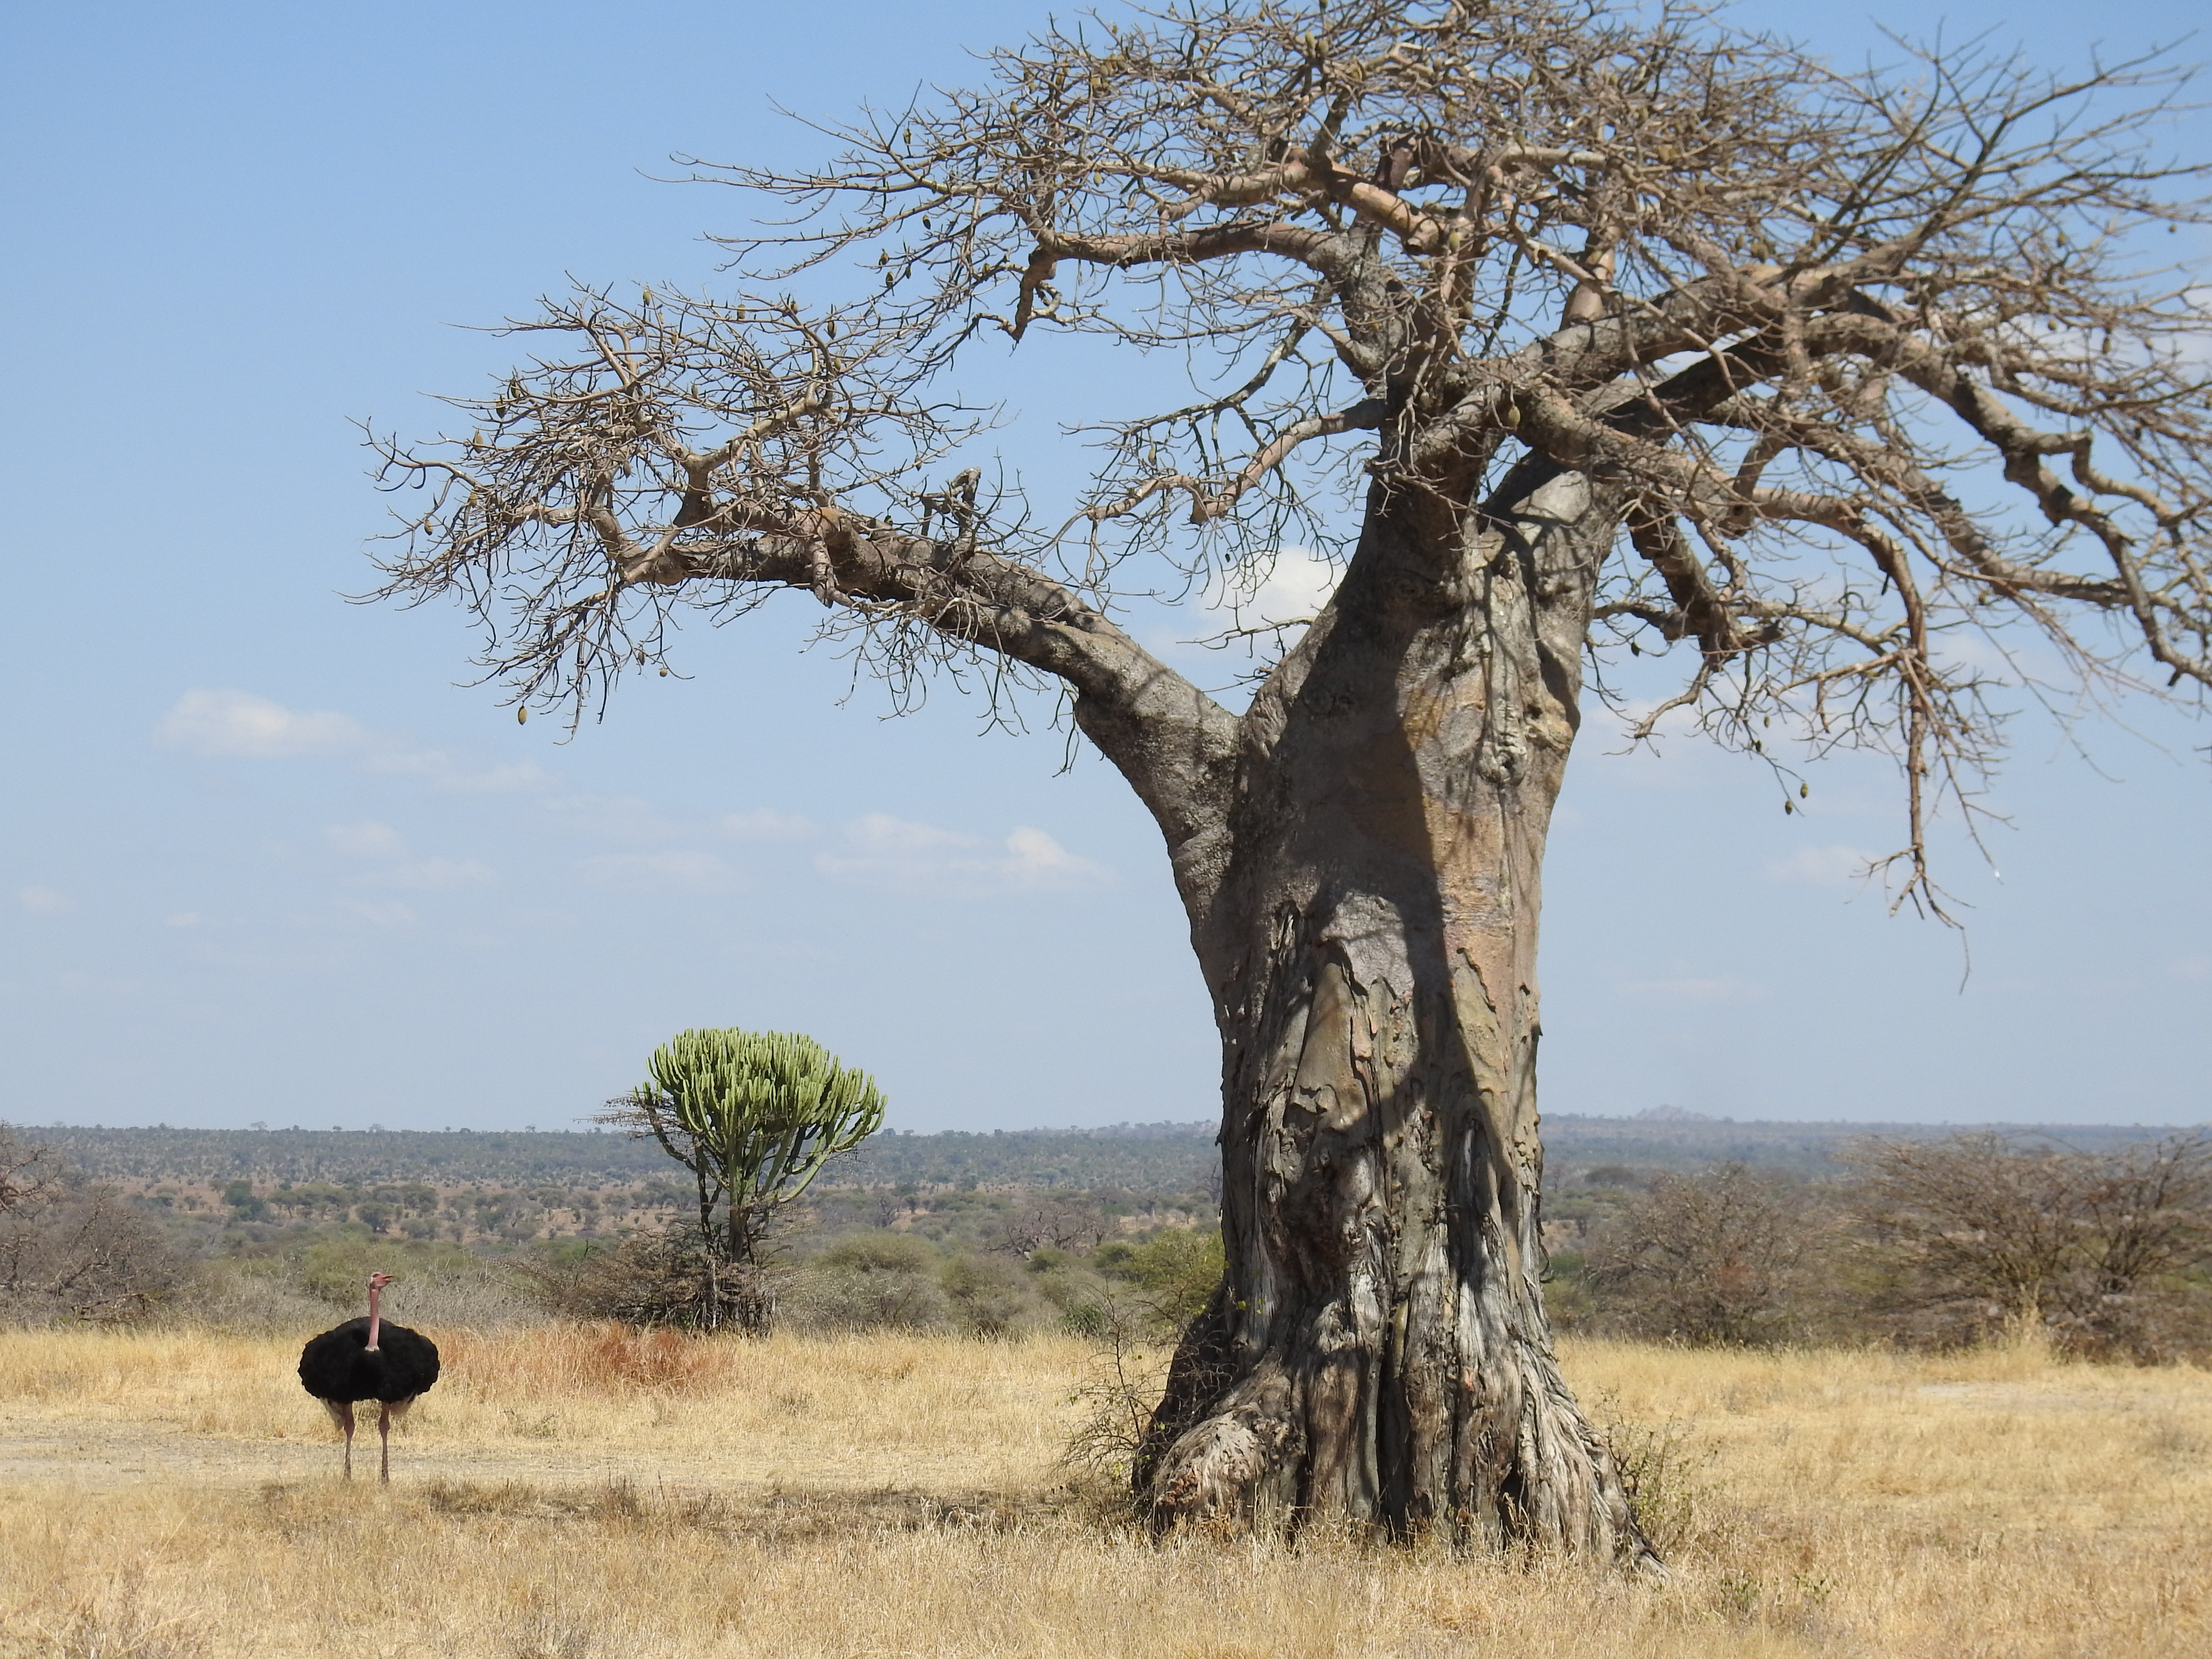 Ostrich_and_upside_down_tree.jpg